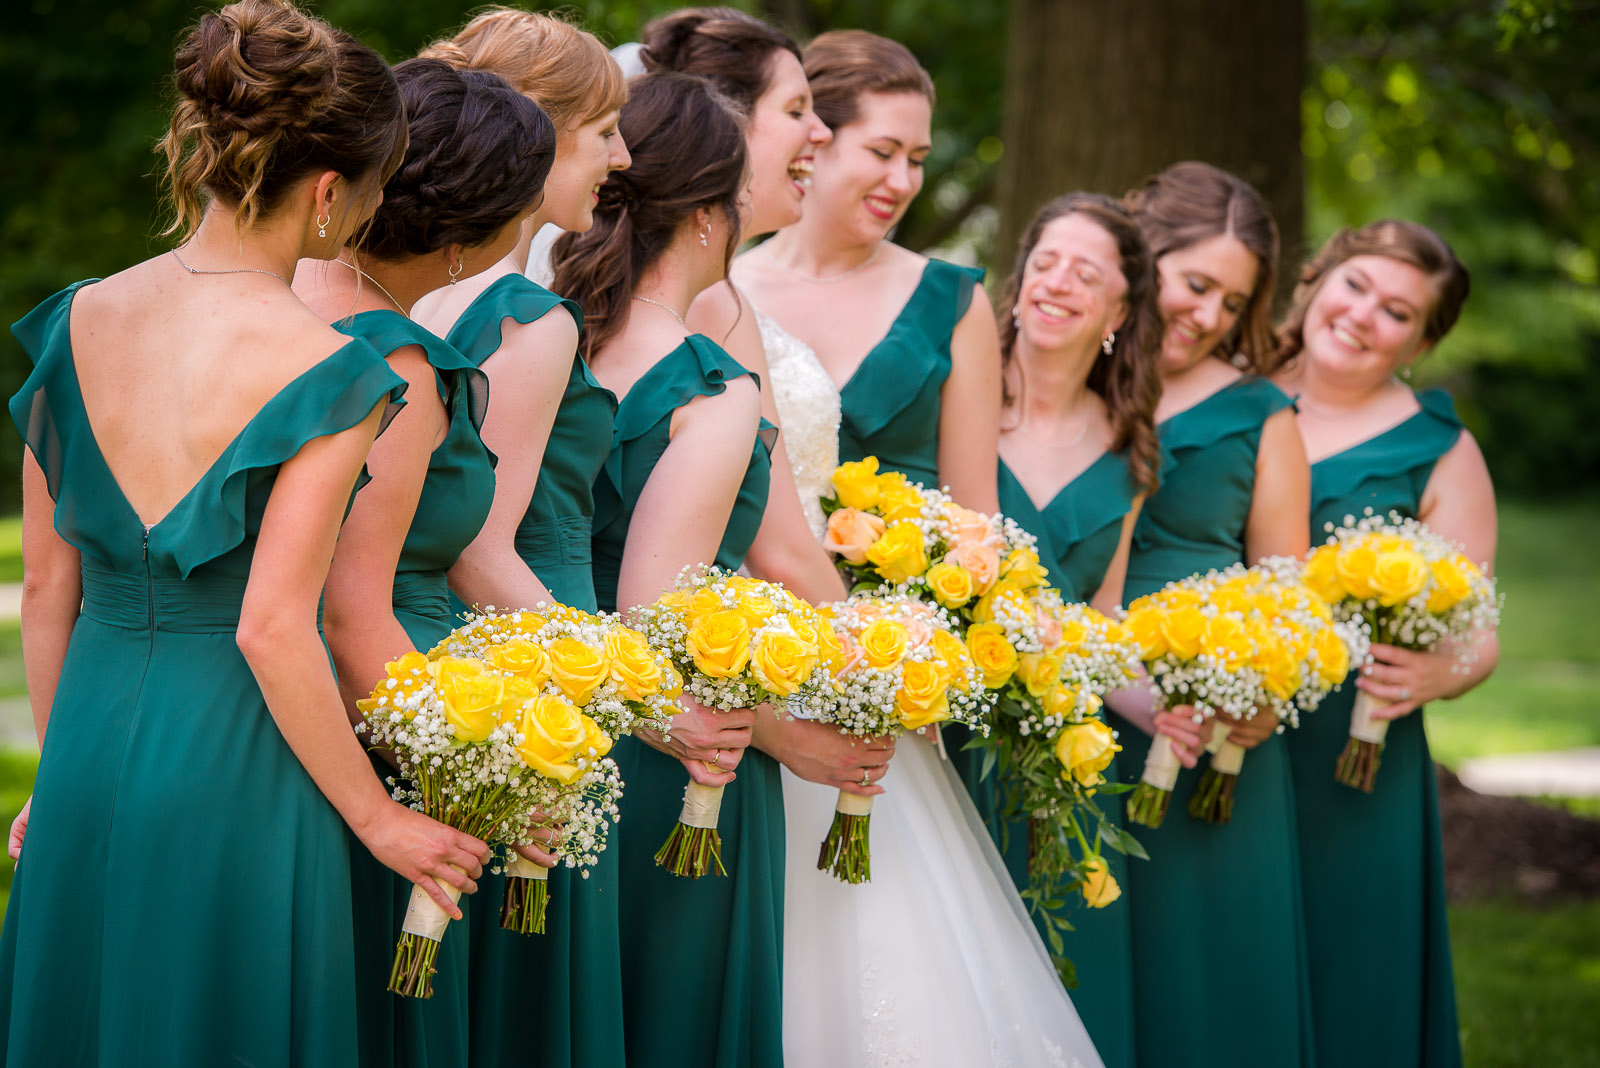 Eric_and_Christy_Photography_Blog_Wedding_Kelly_Michael-21